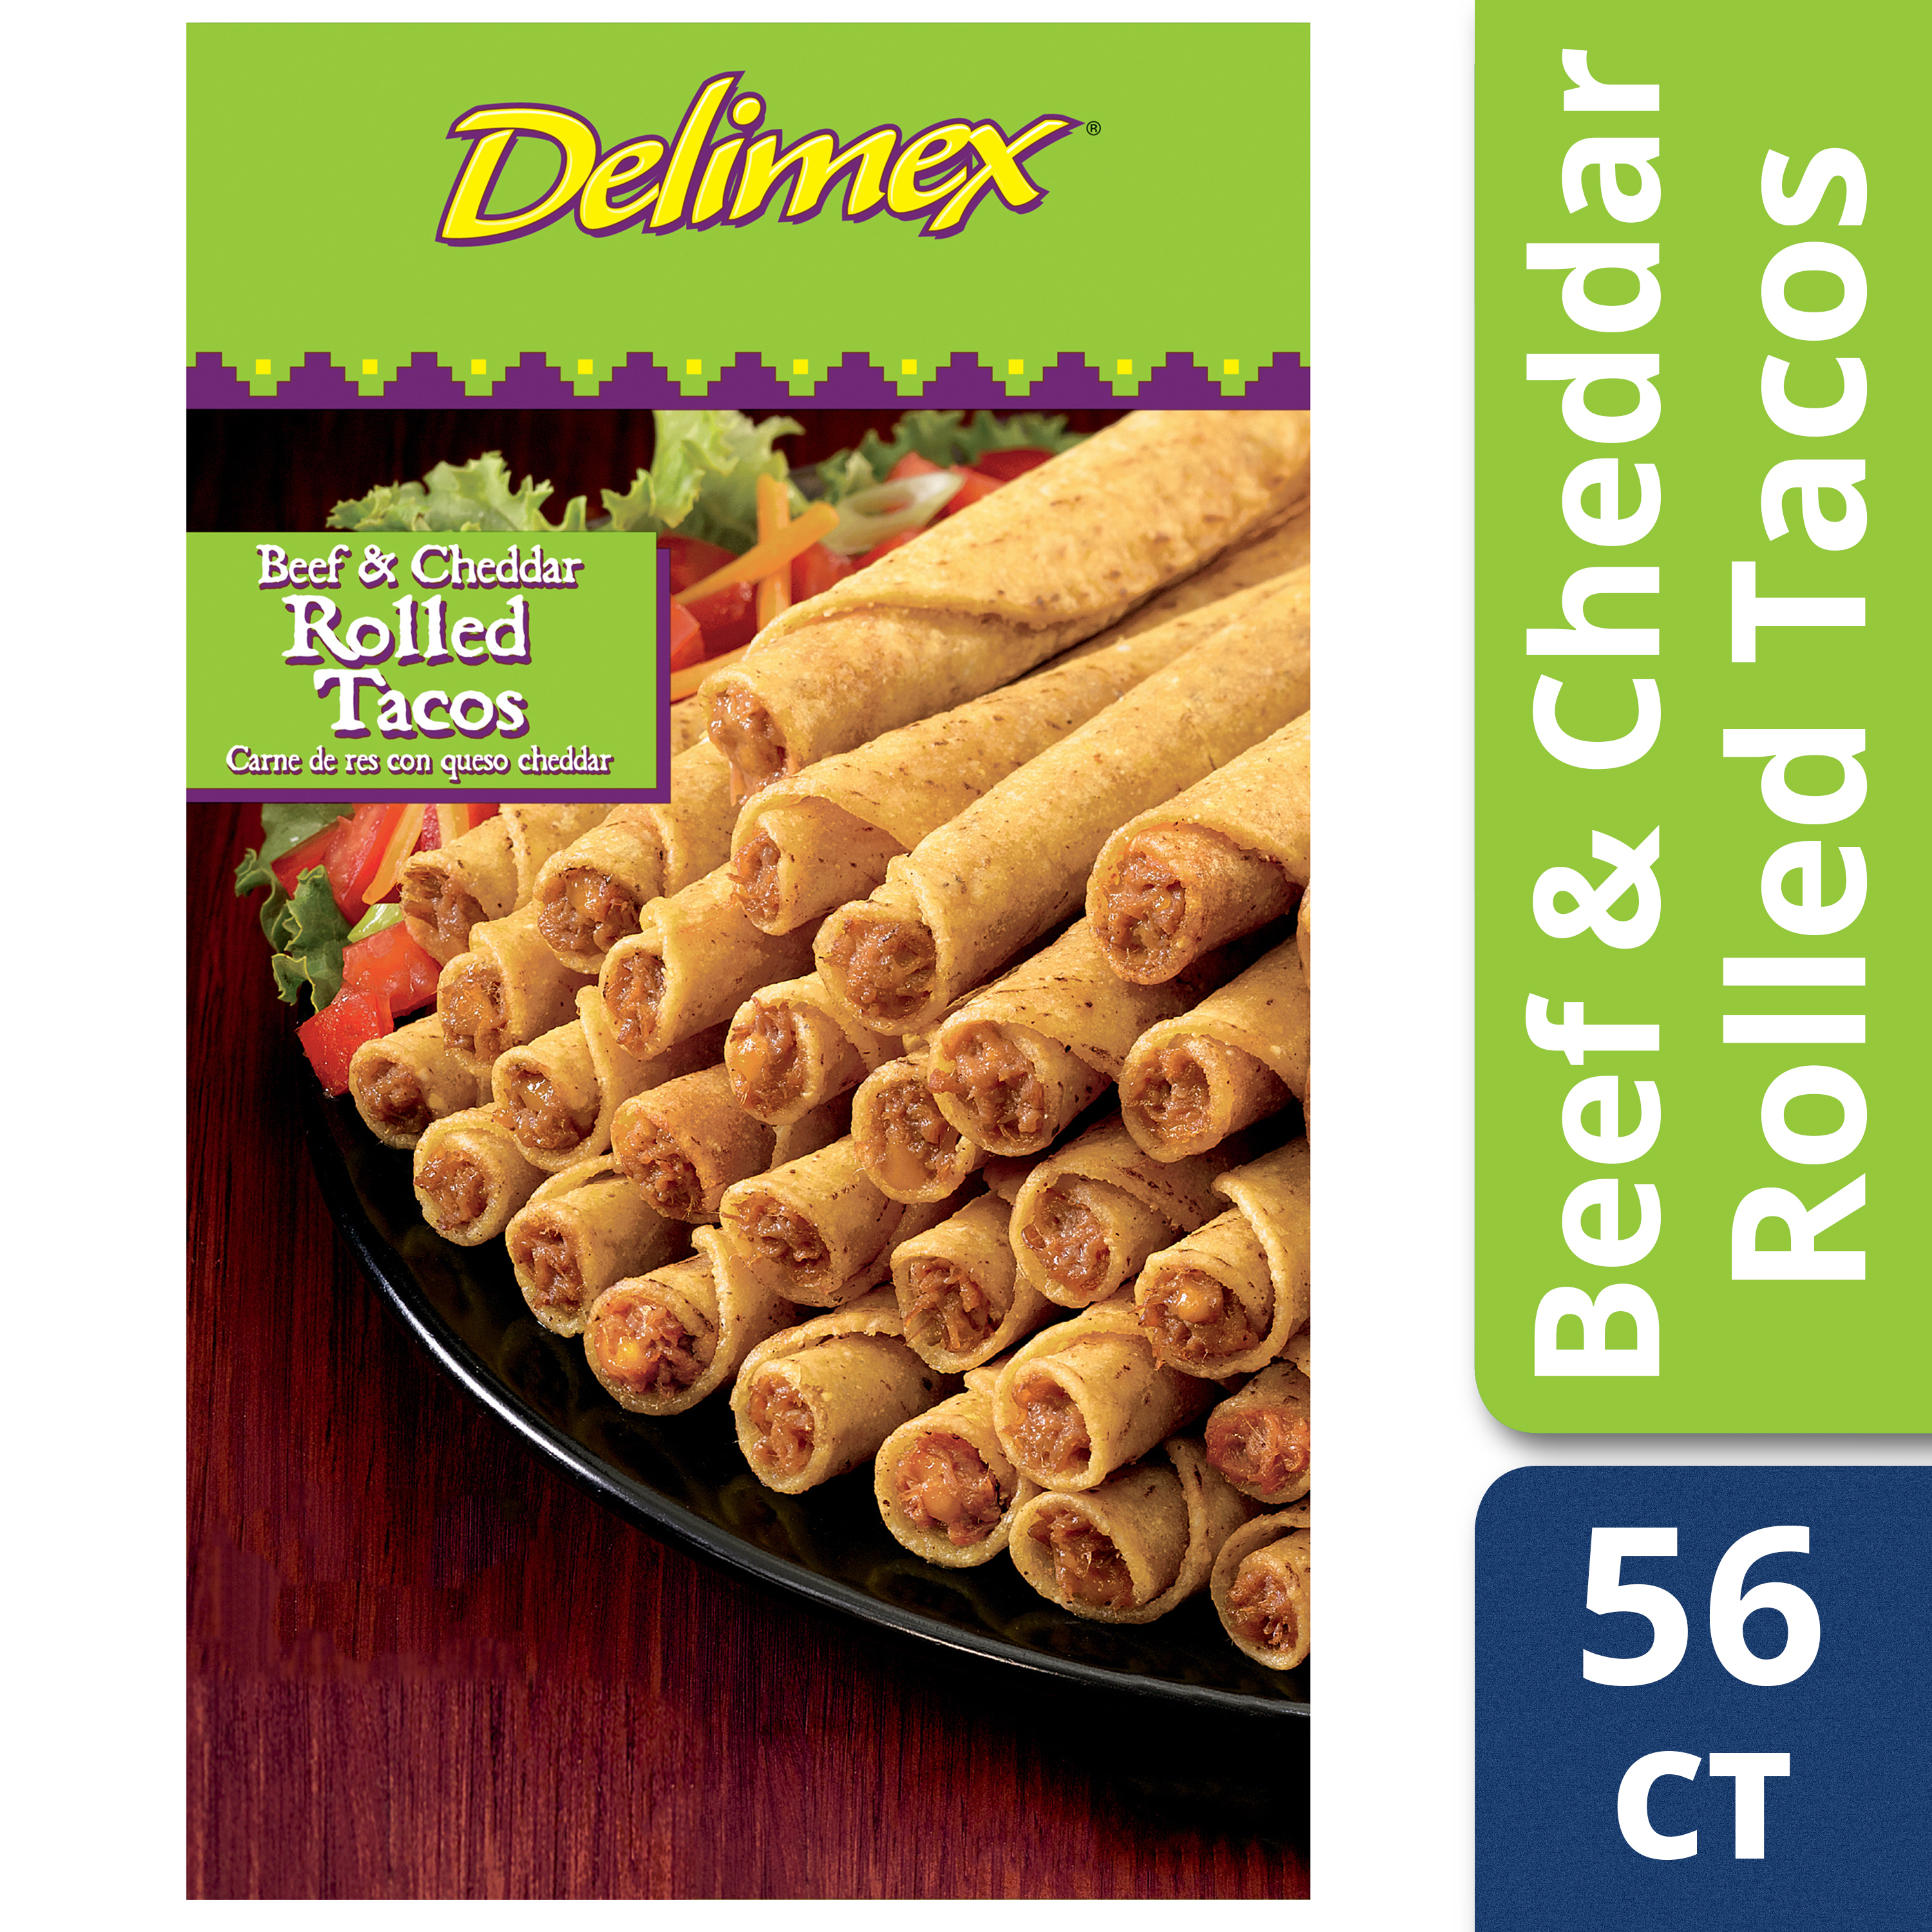 Delimex Beef & Cheddar Rolled Tacos 56 count Box